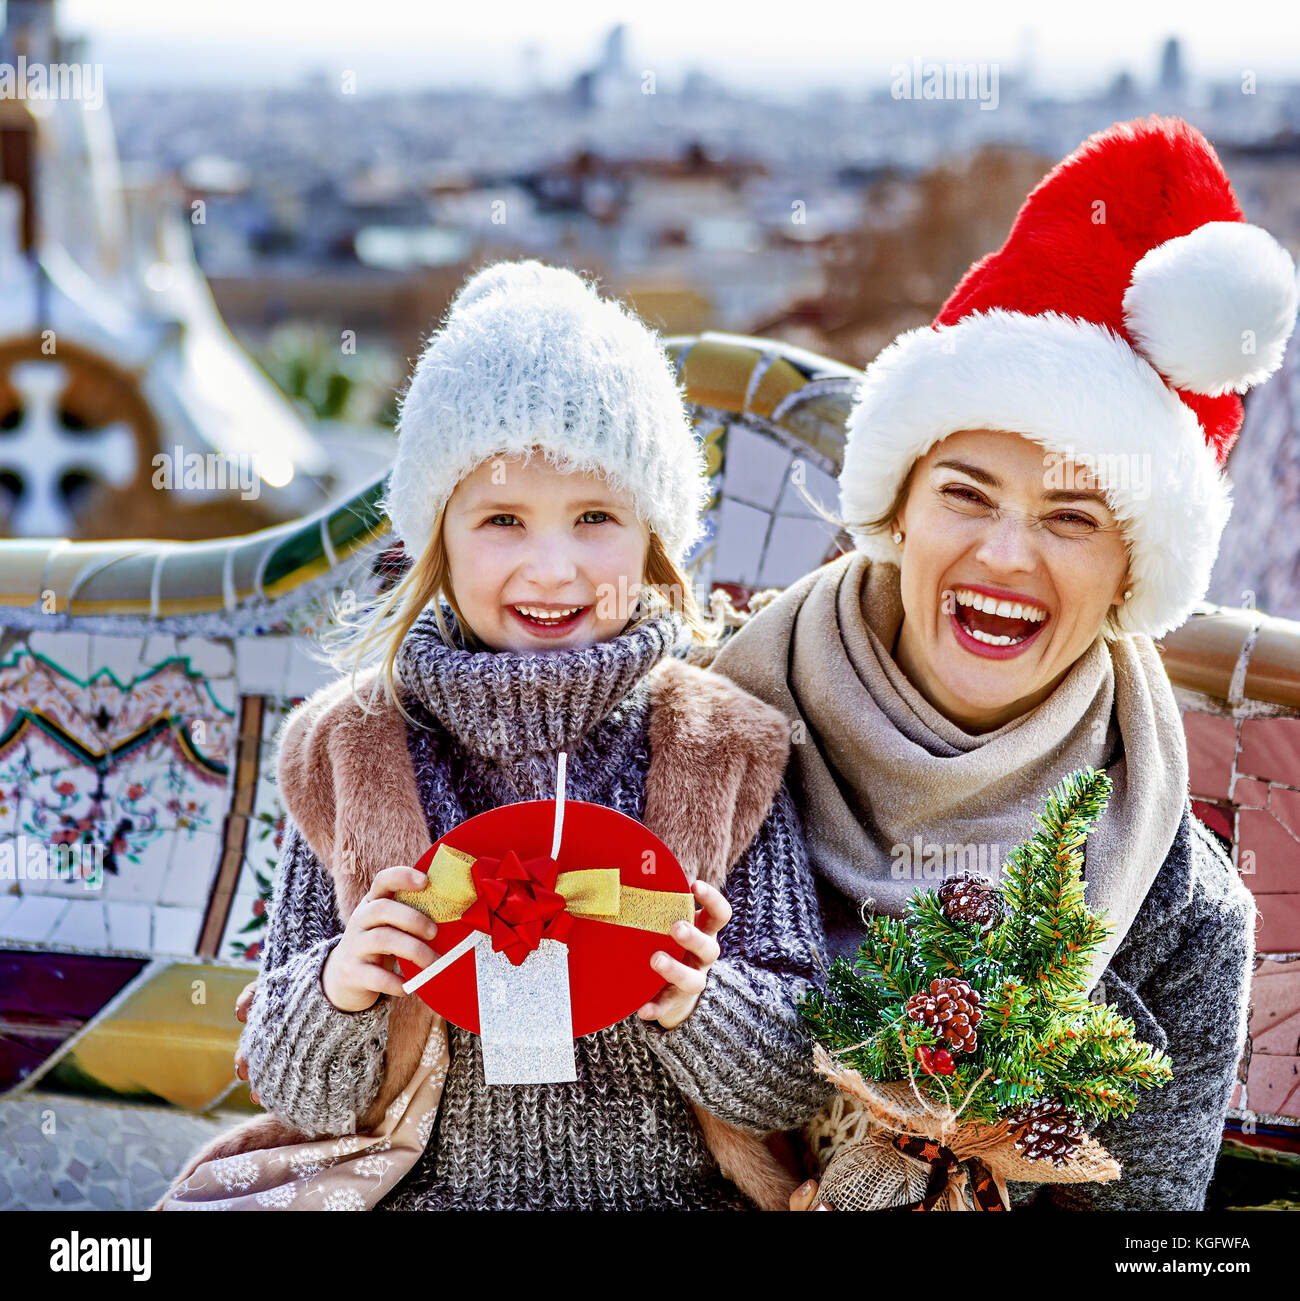 Winter wonderland in Barcelona at Christmas. Portrait of happy trendy mother and child tourists with a little Christmas - Stock Image